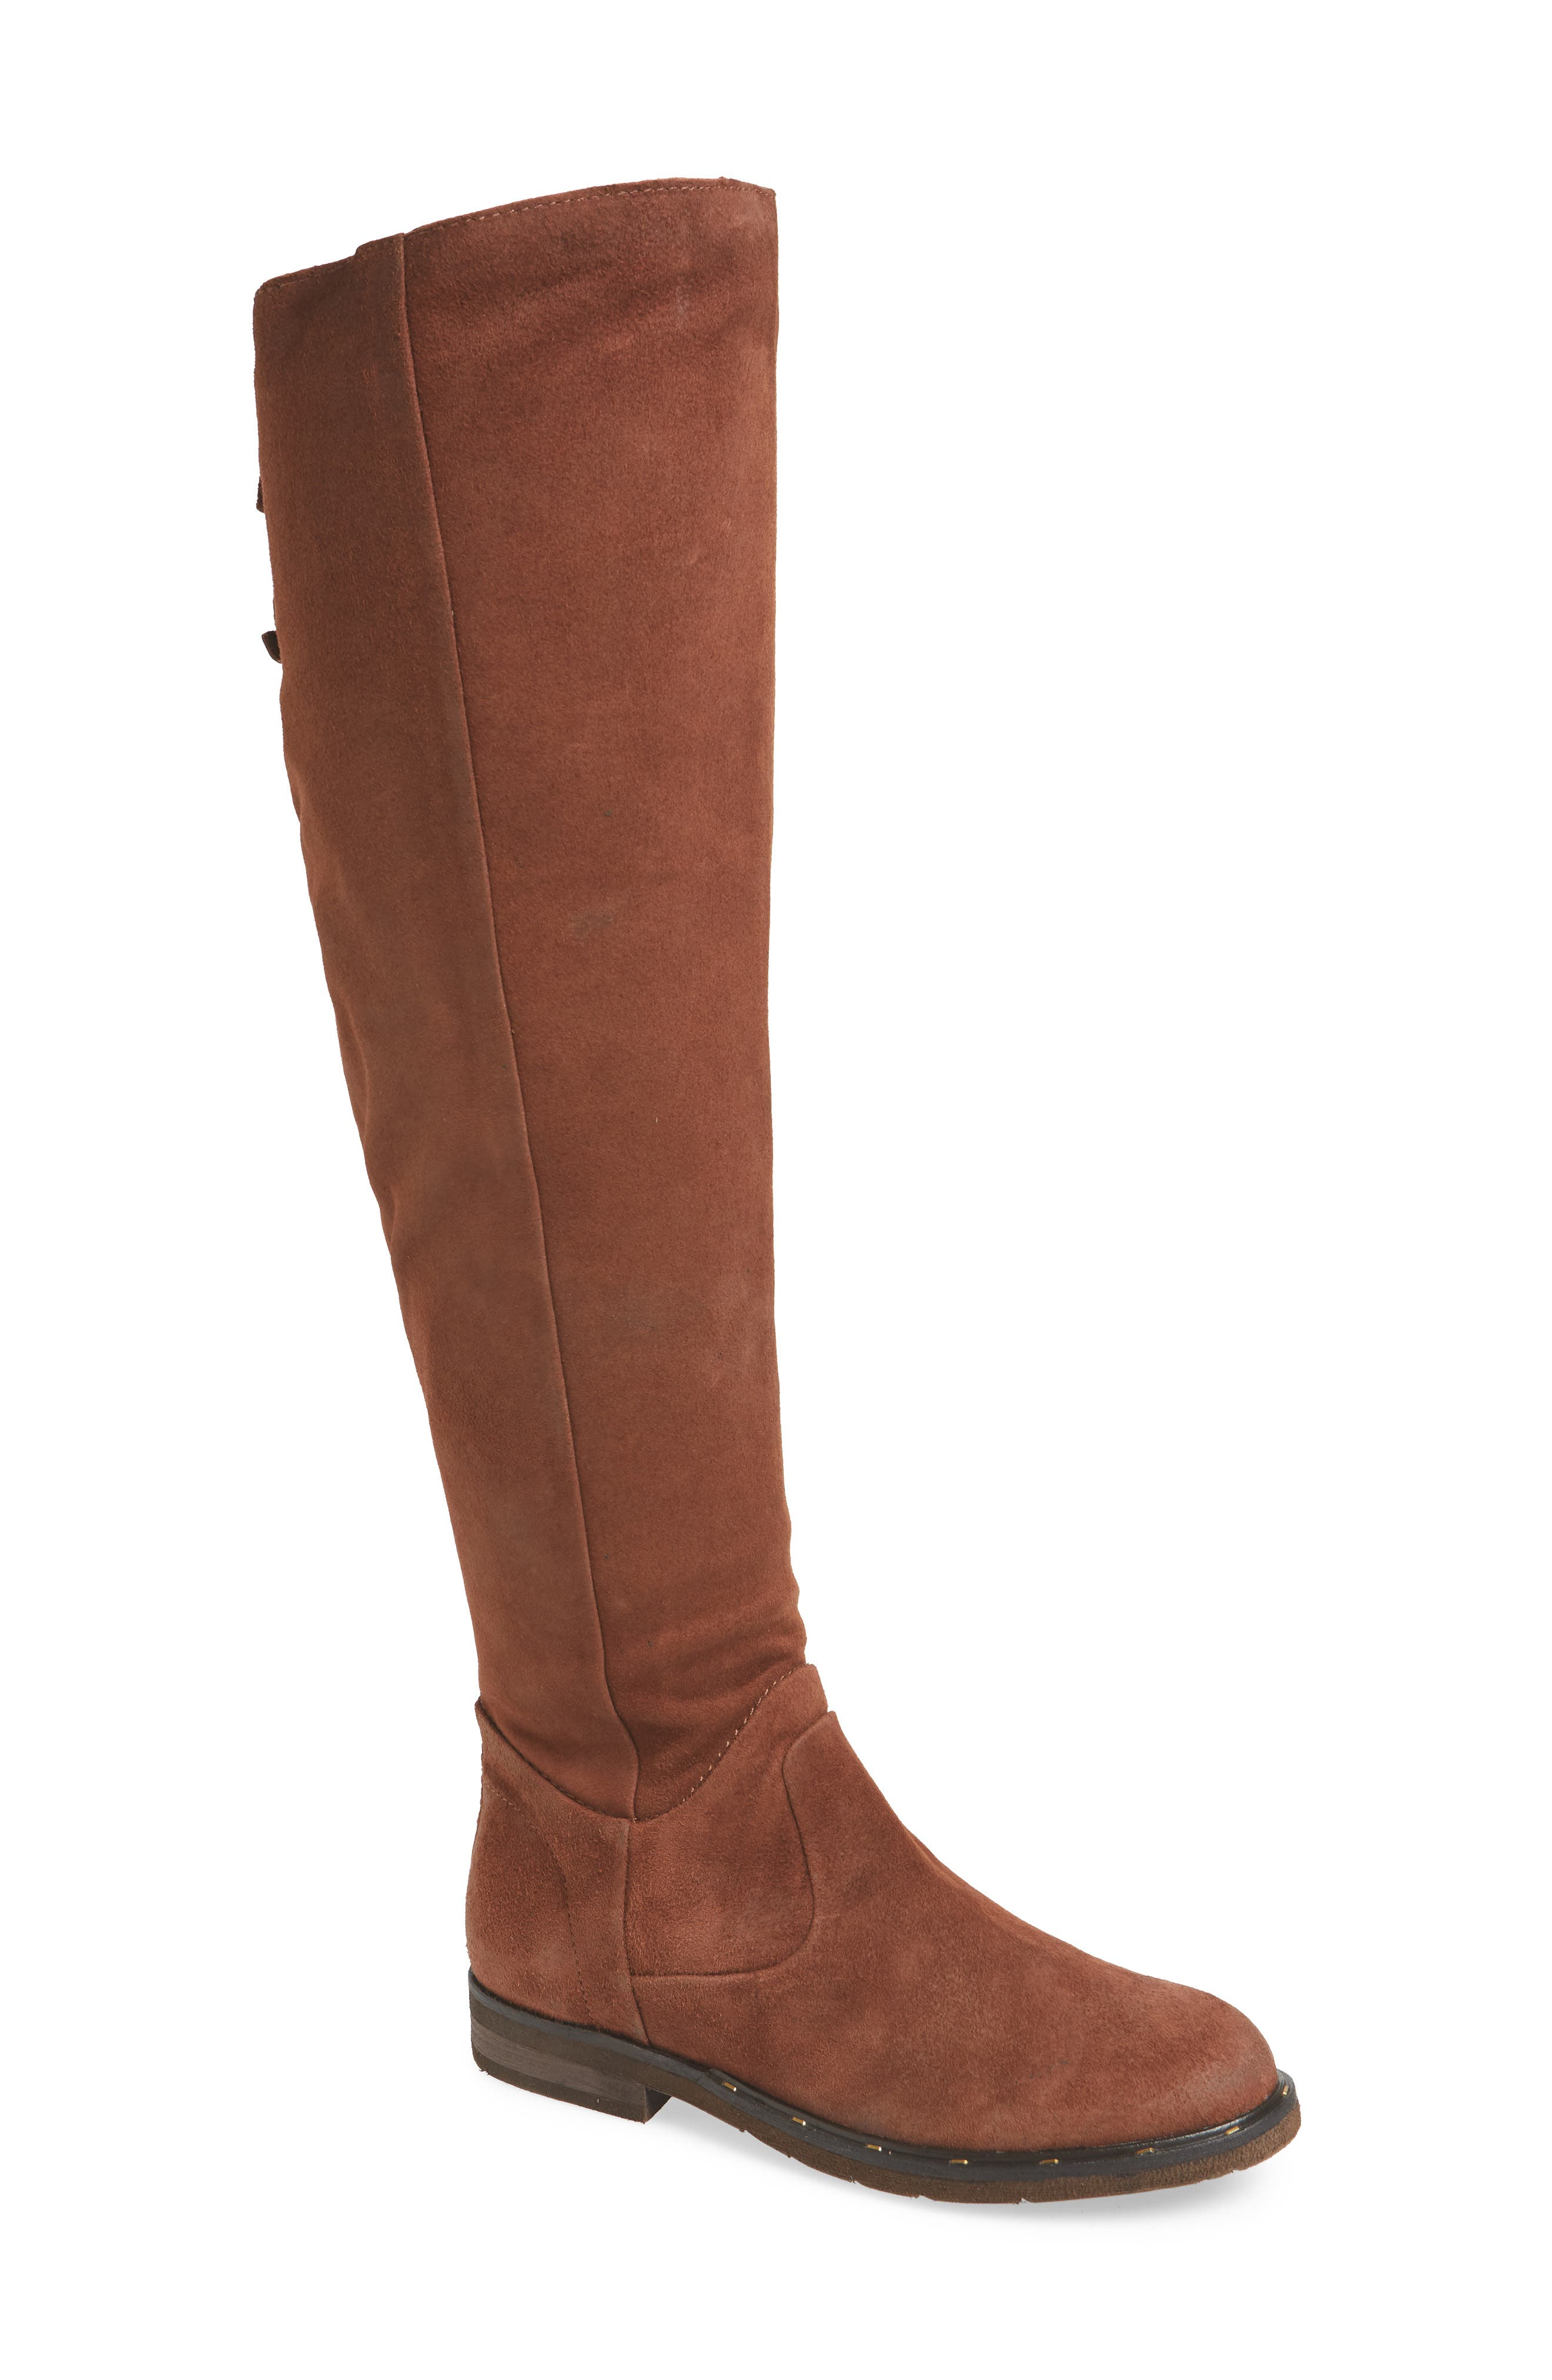 Otbt Steerage Over The Knee Boot, Brown